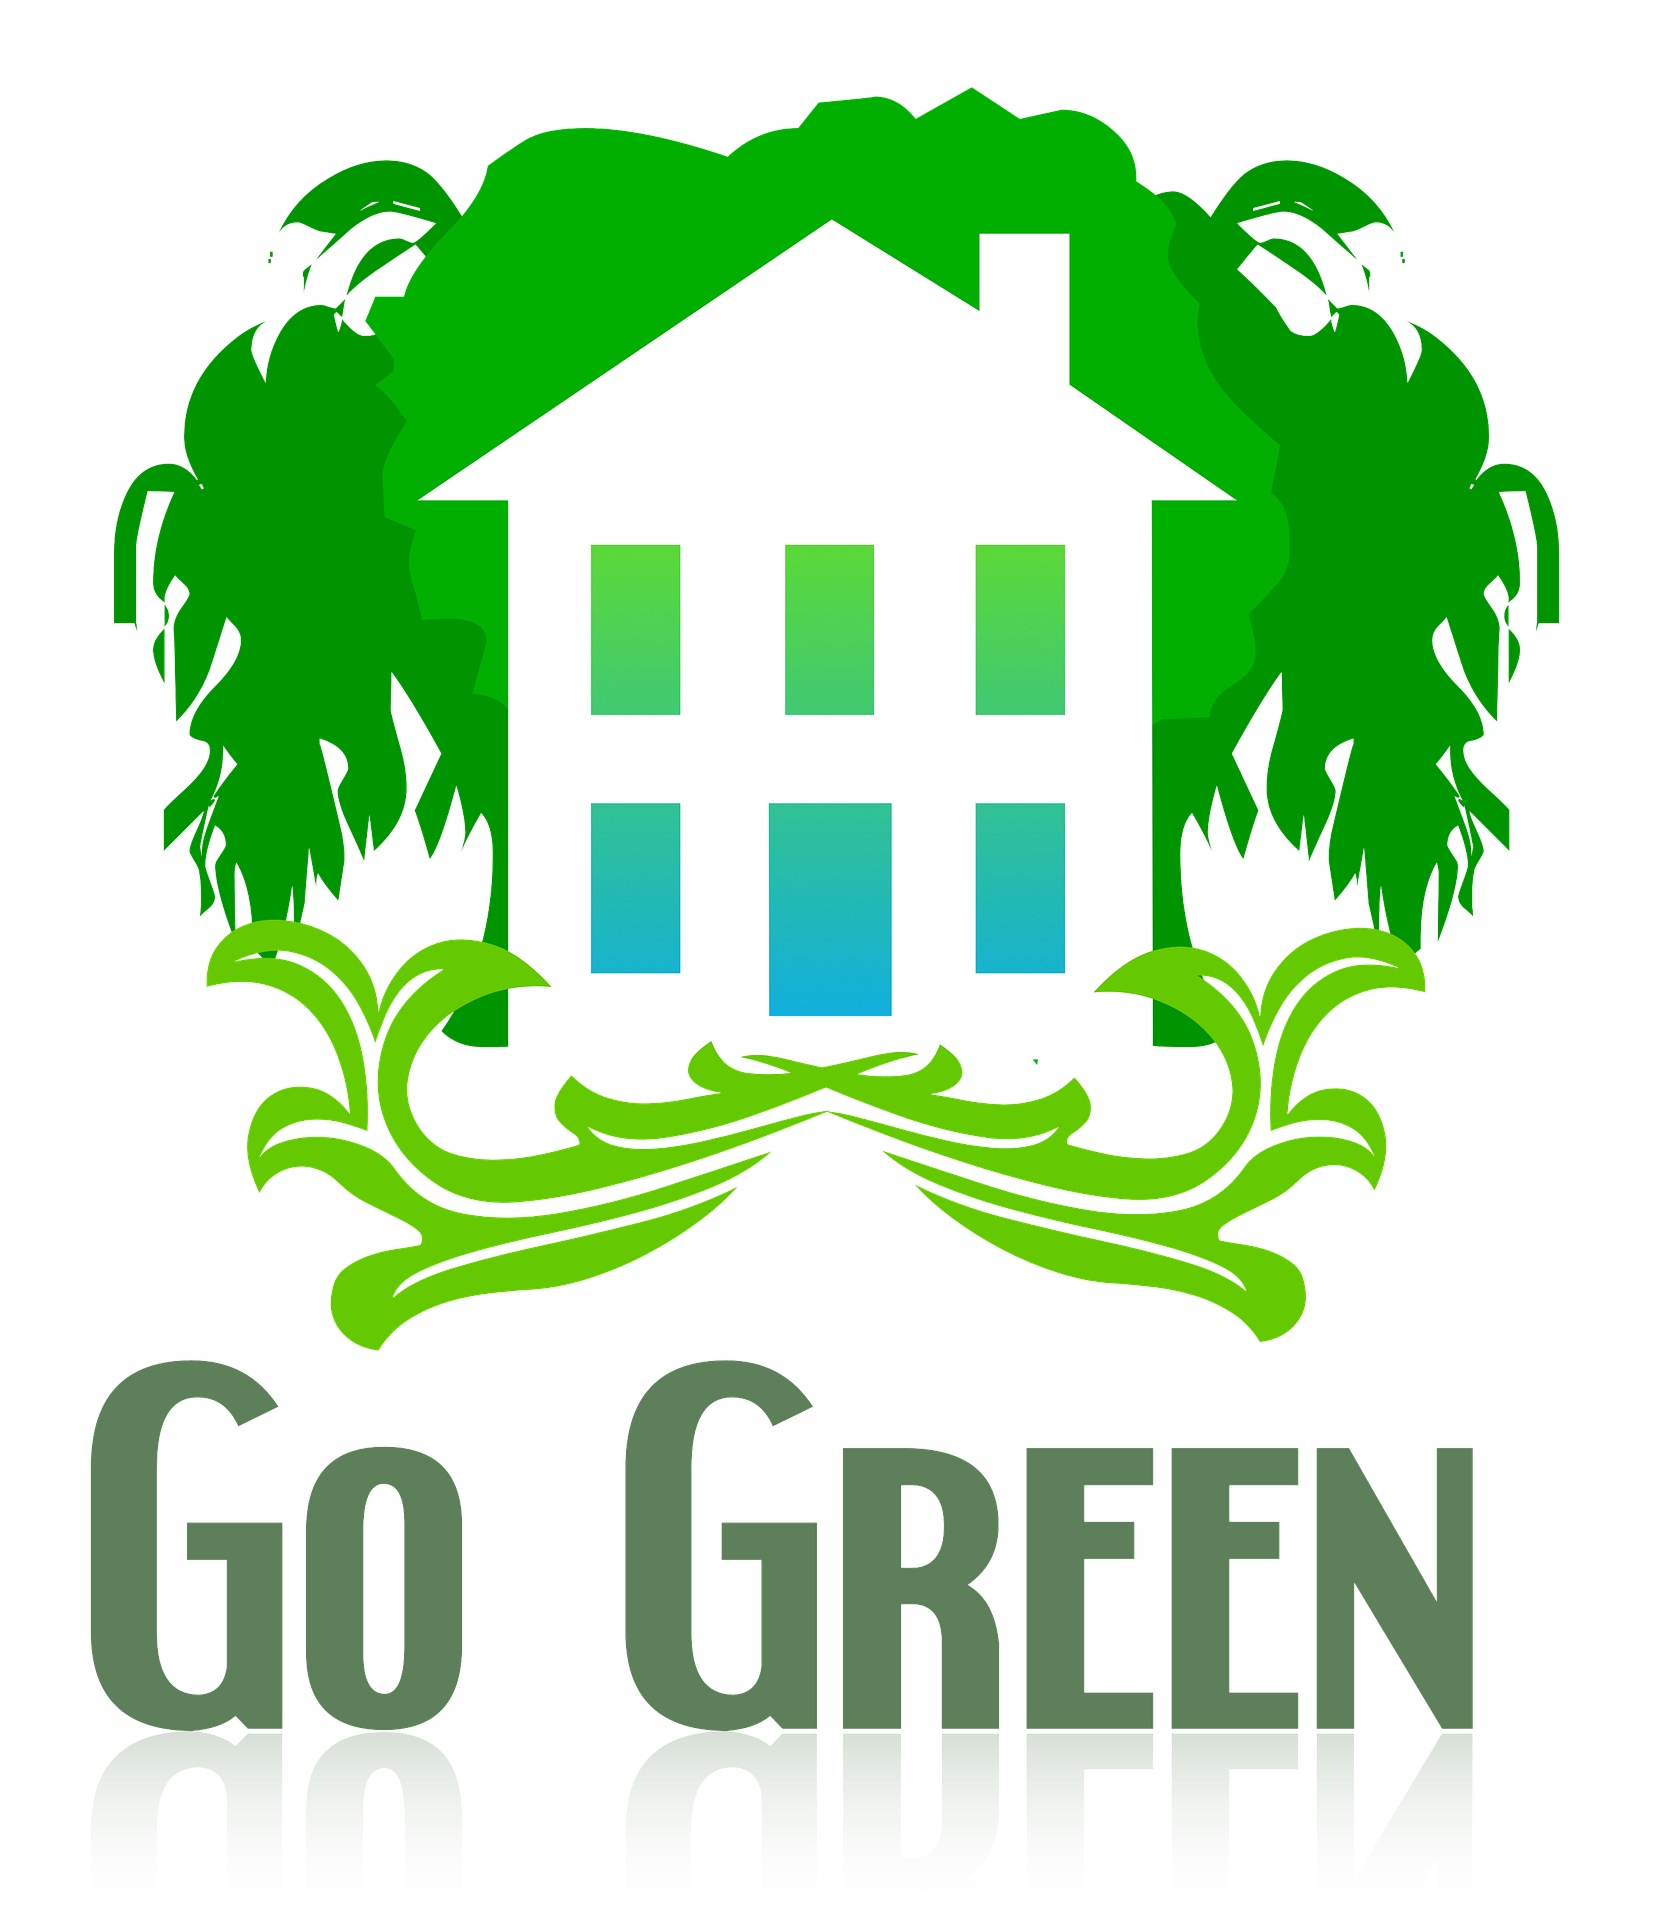 Galyean Insulating Offers A Wide Range Of Products And Services To Keep Your Home Or Commercial Property Comfortable And Energ Go Green Green Living Green Tech